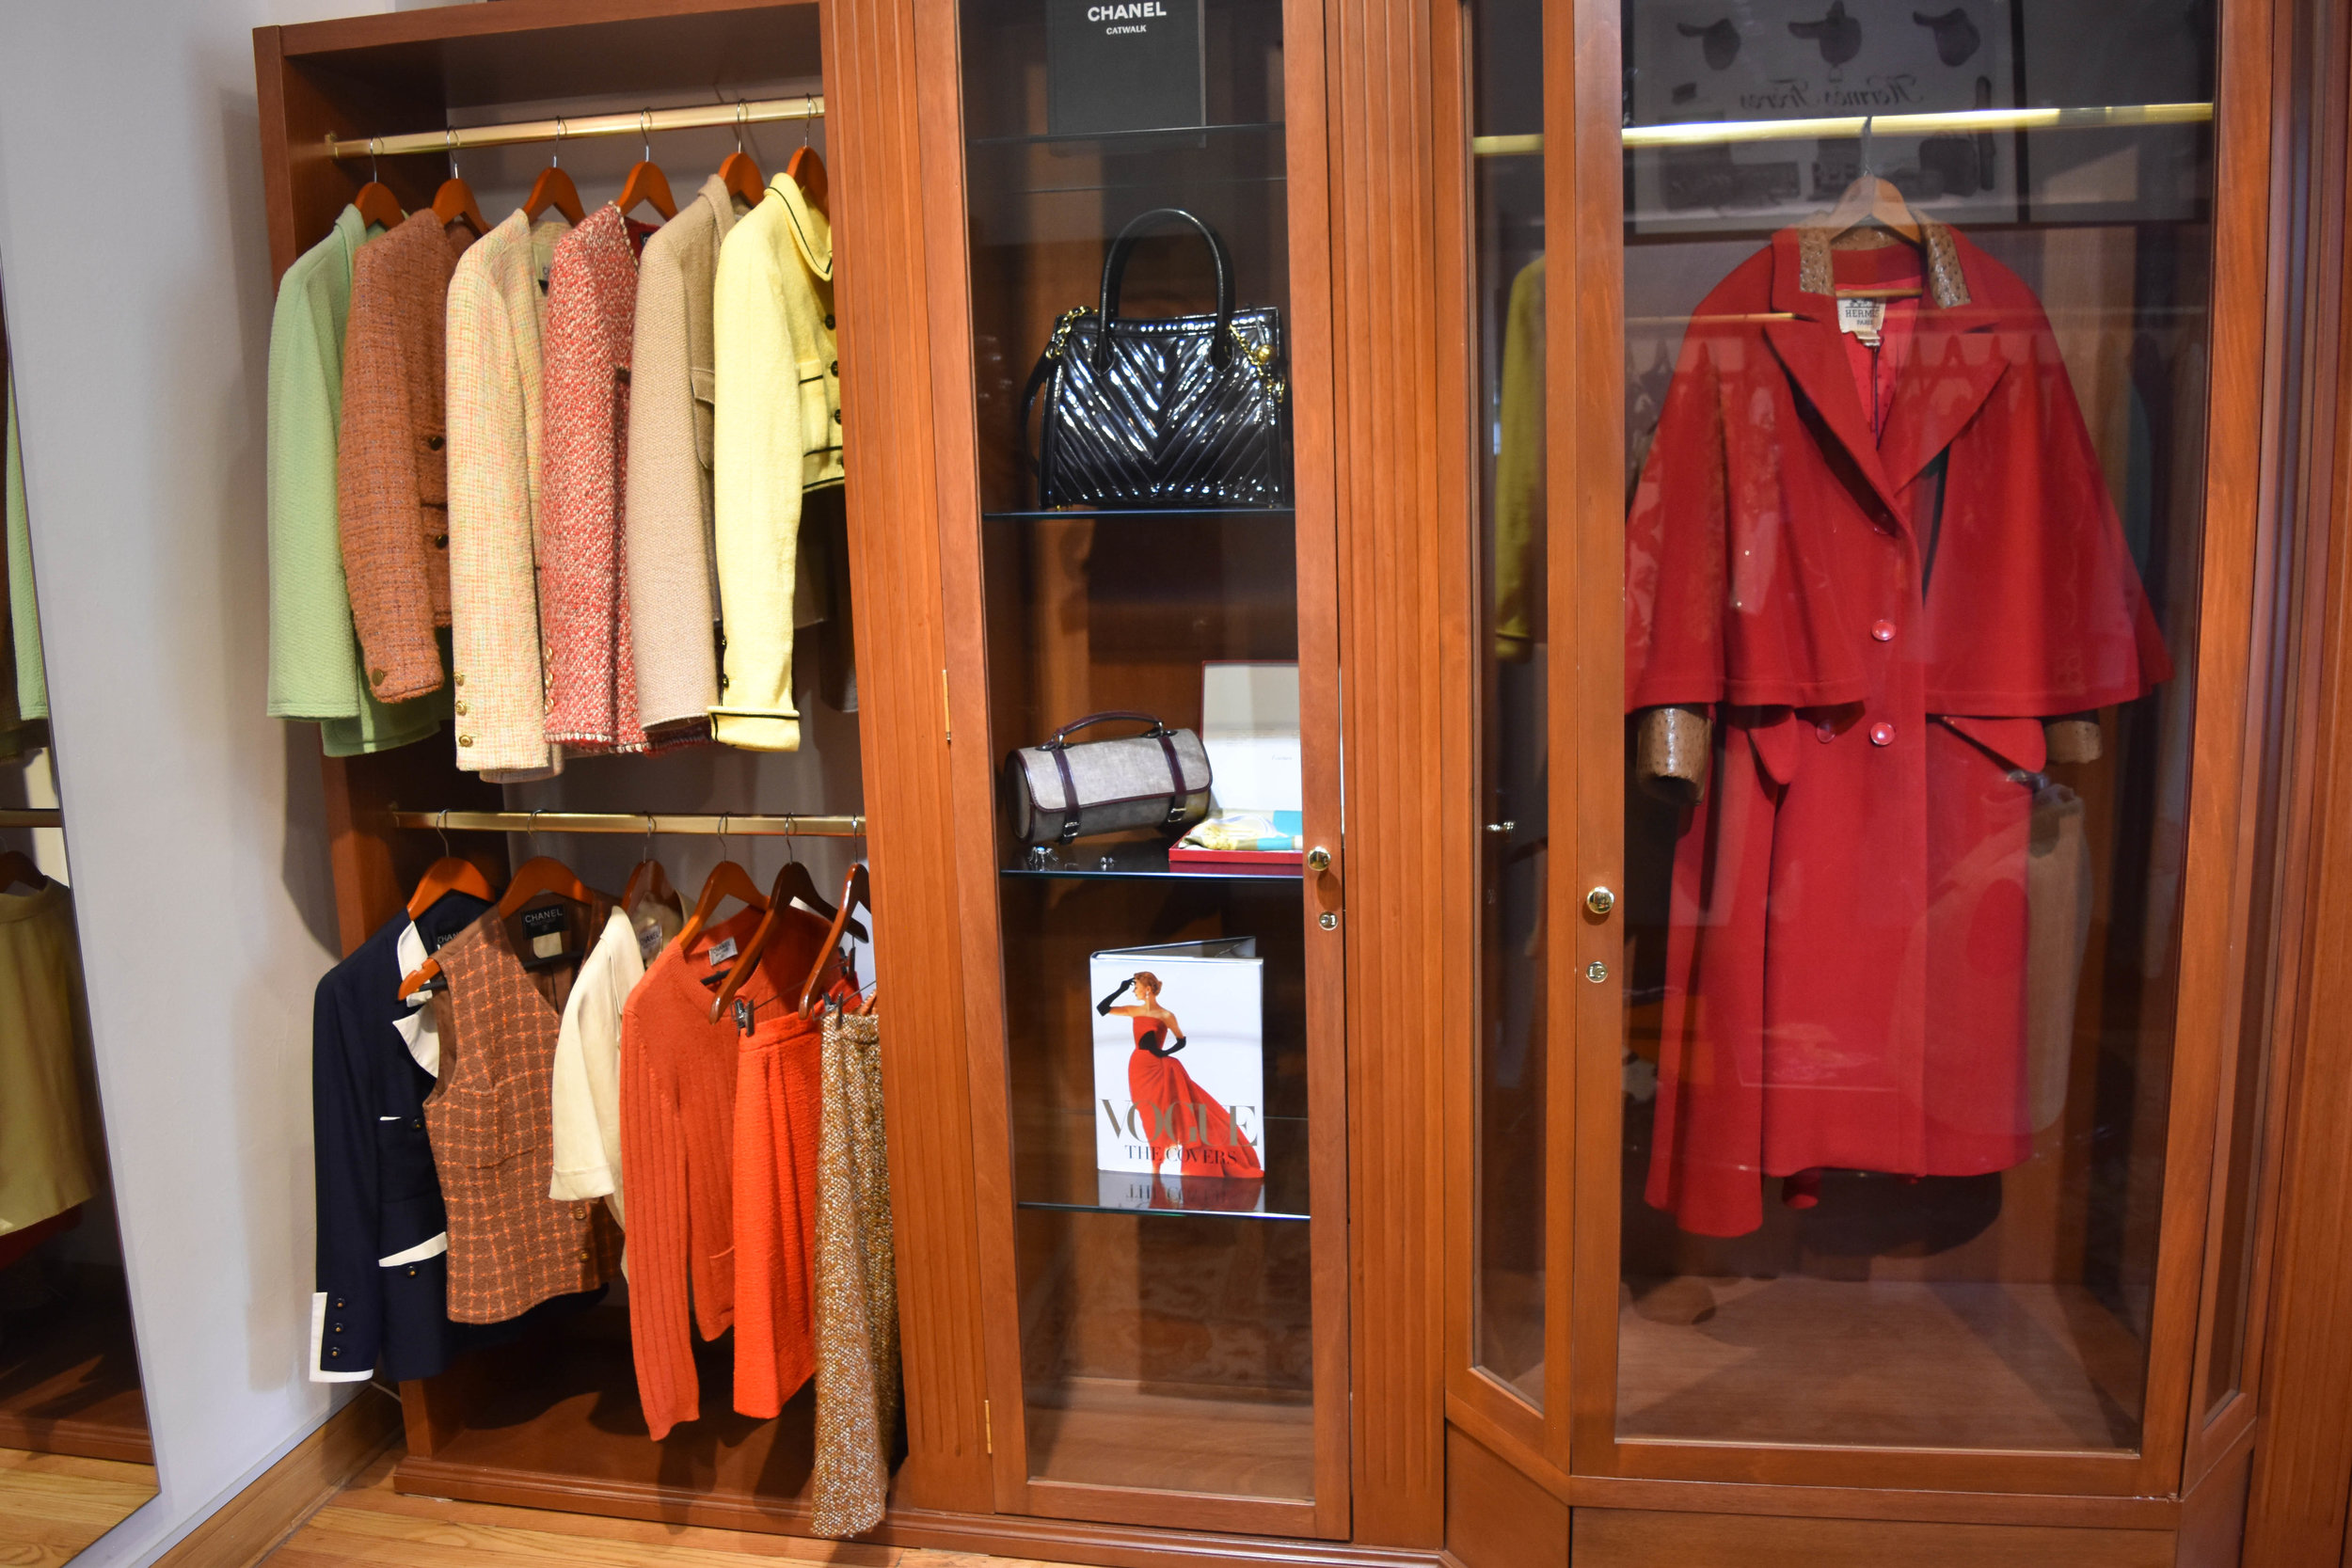 The Coco Chanel room—Chanel tweed suits, Birkin bags, Hermés scarves, and my drool on the floor. (Sorry, it's drool-worthy.)